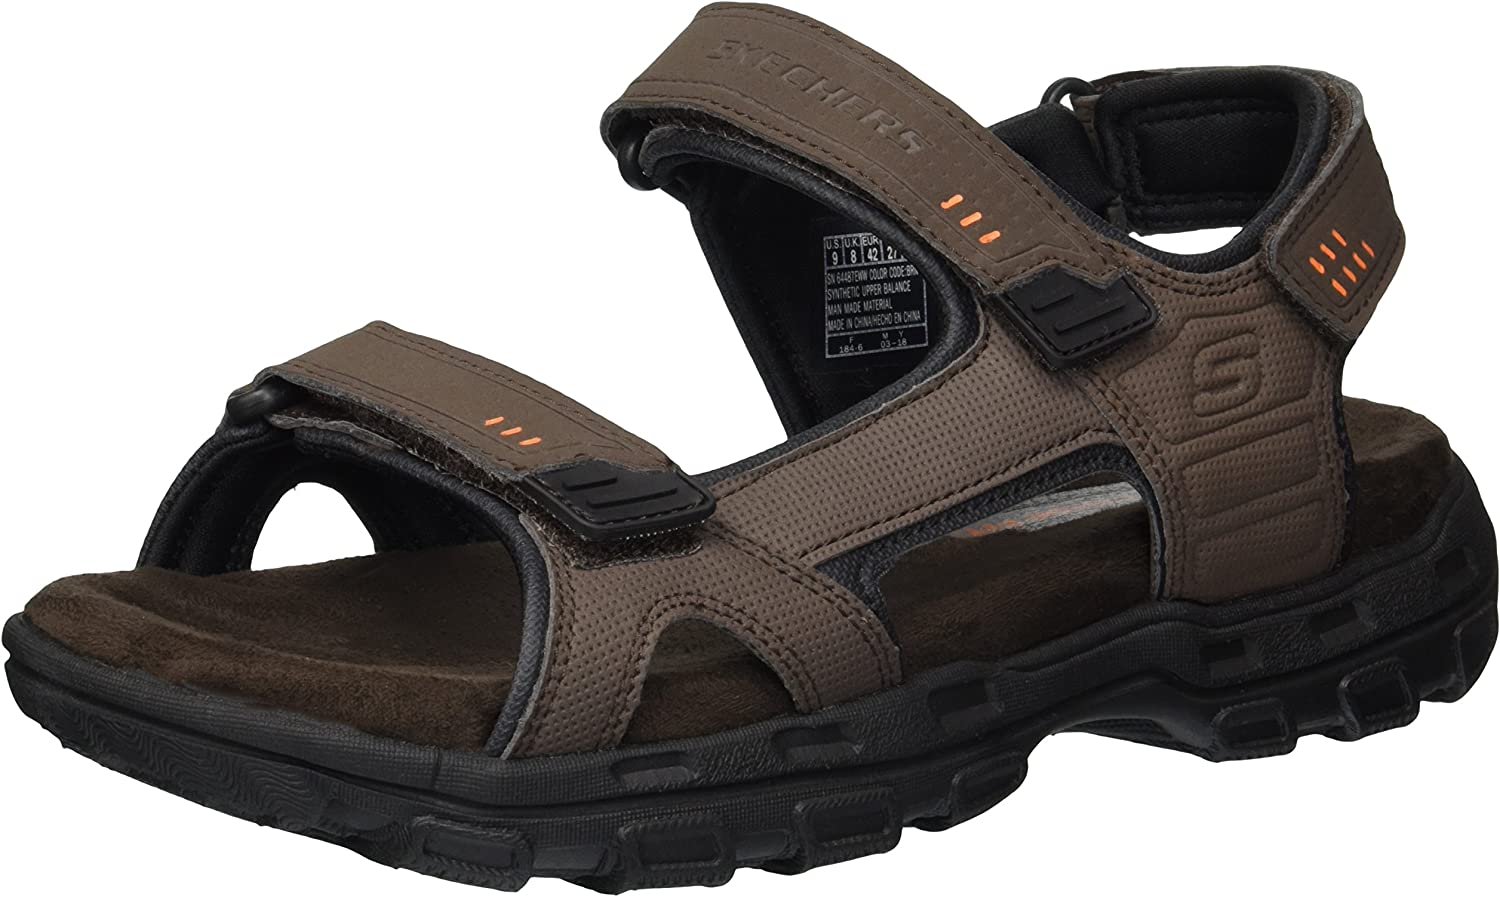 Skechers Men's Louden Sandal